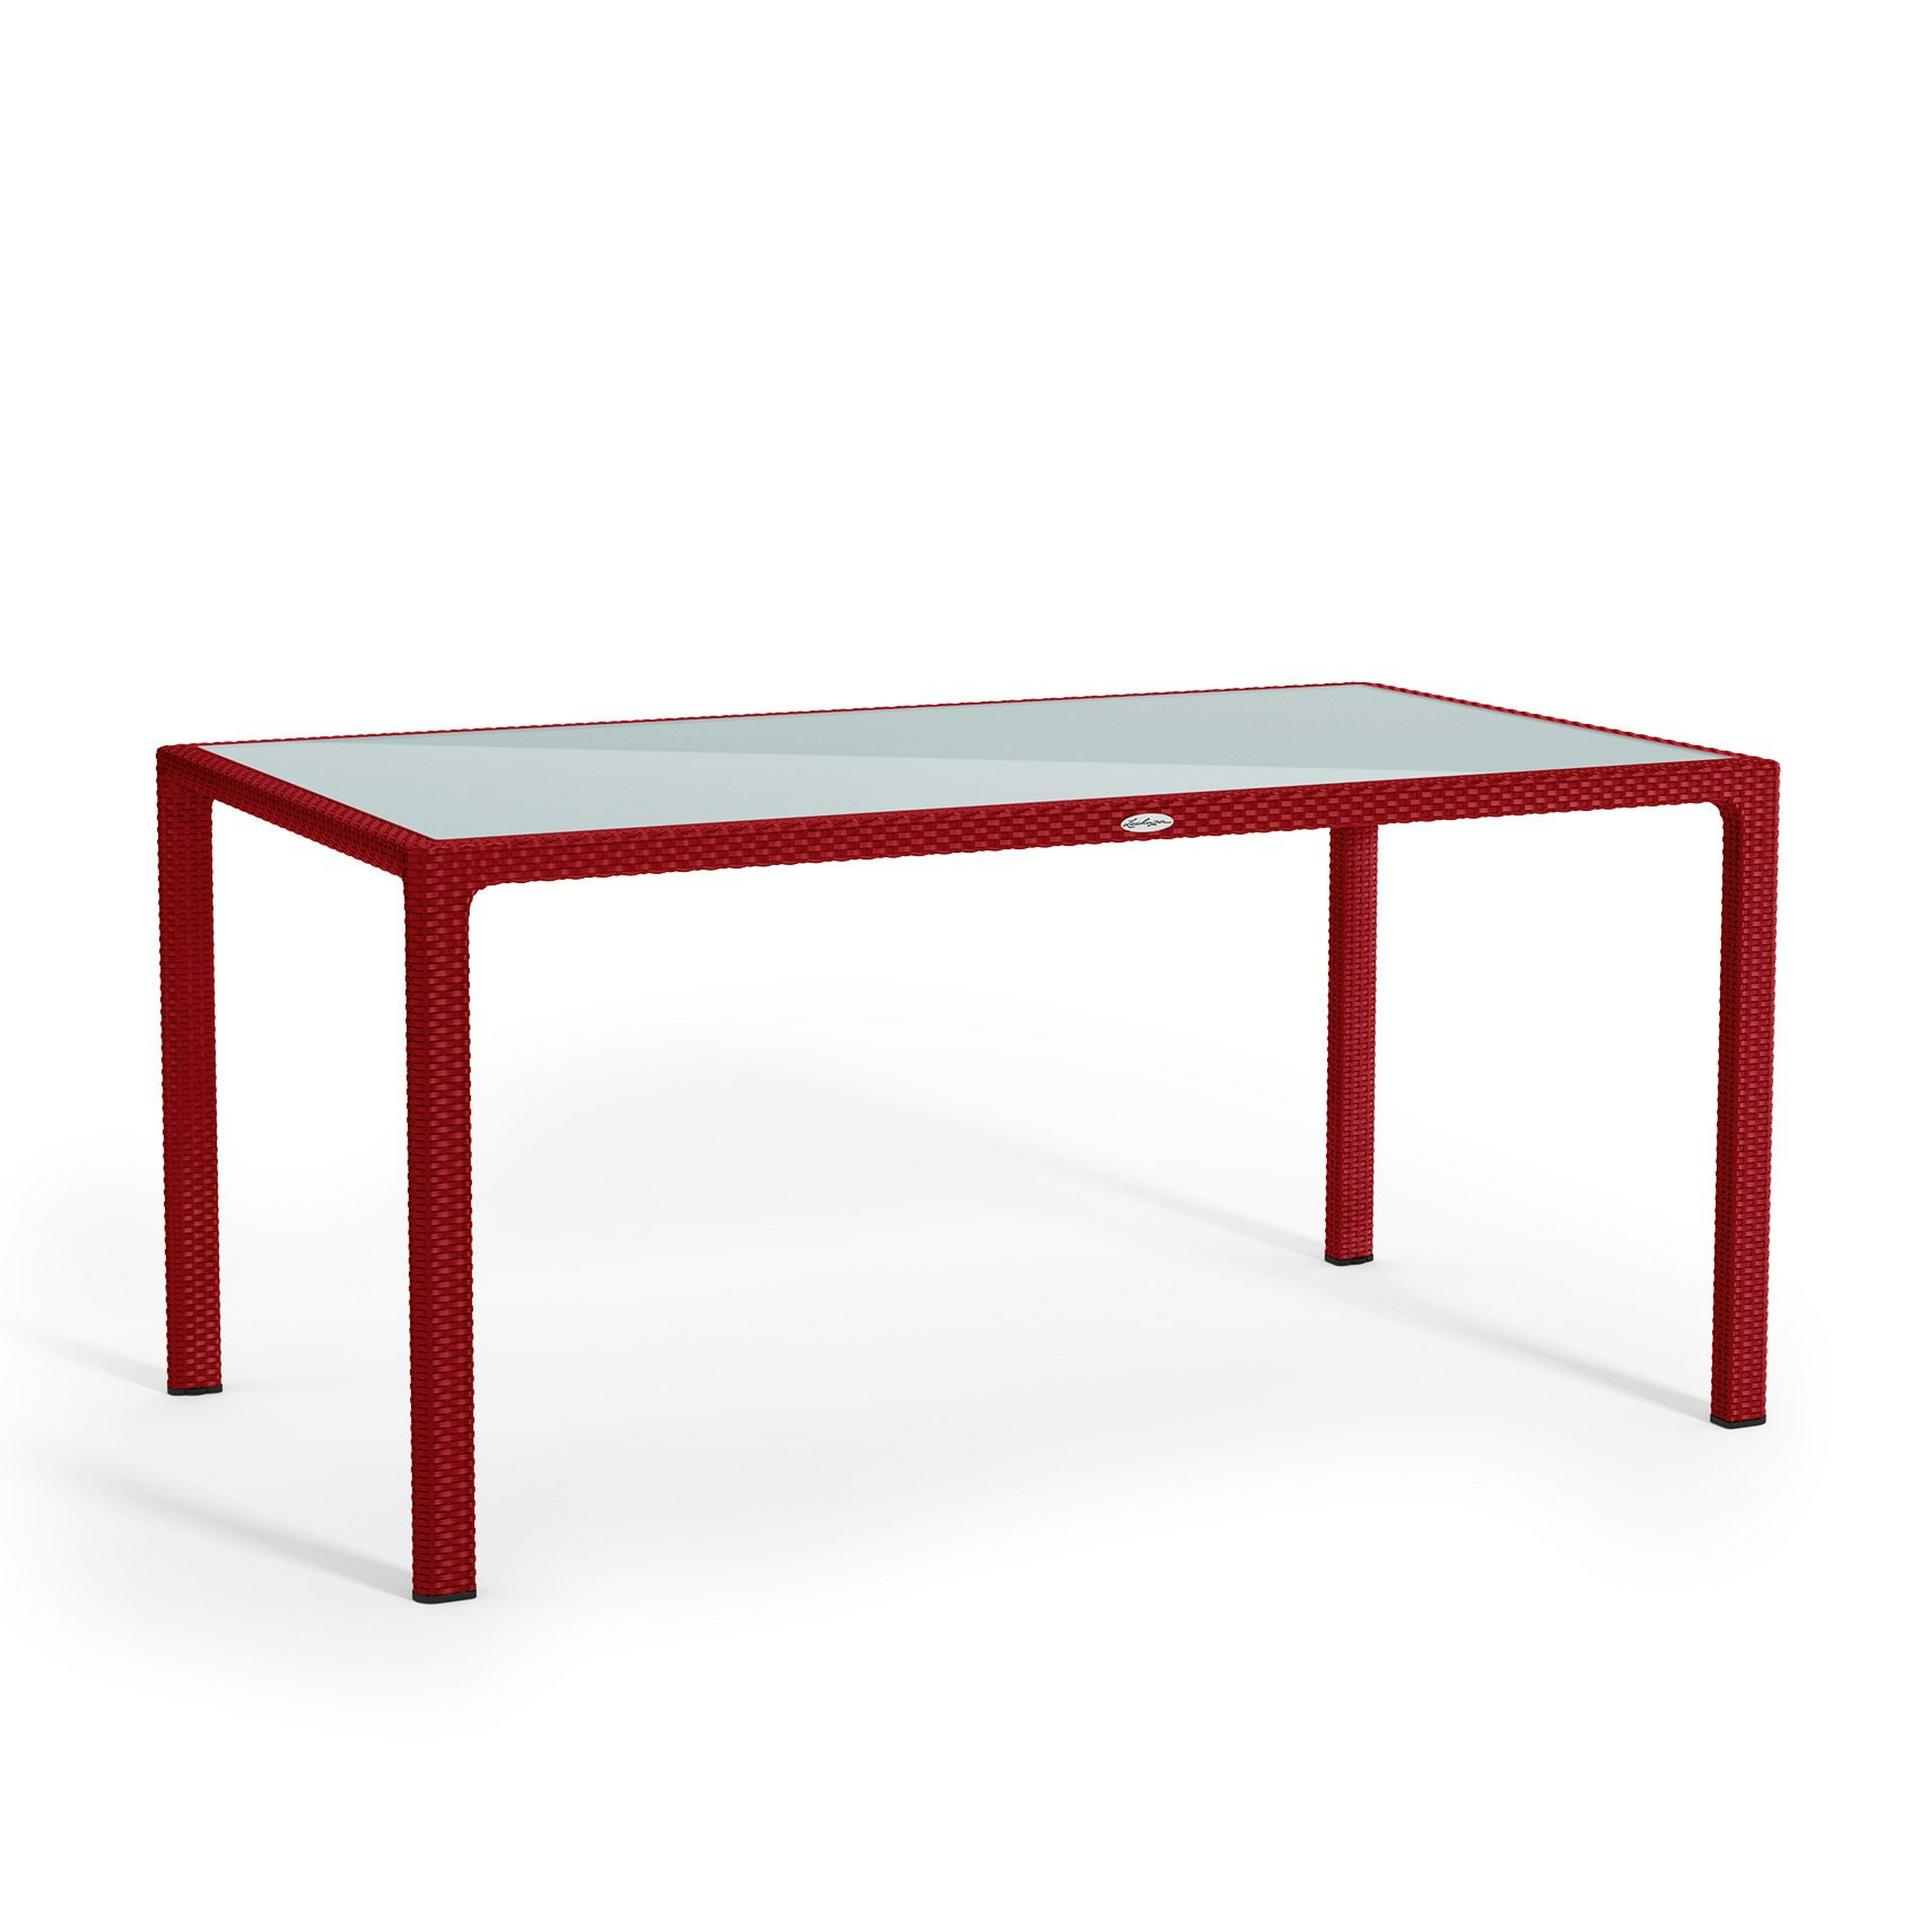 Grande table rouge scarlet